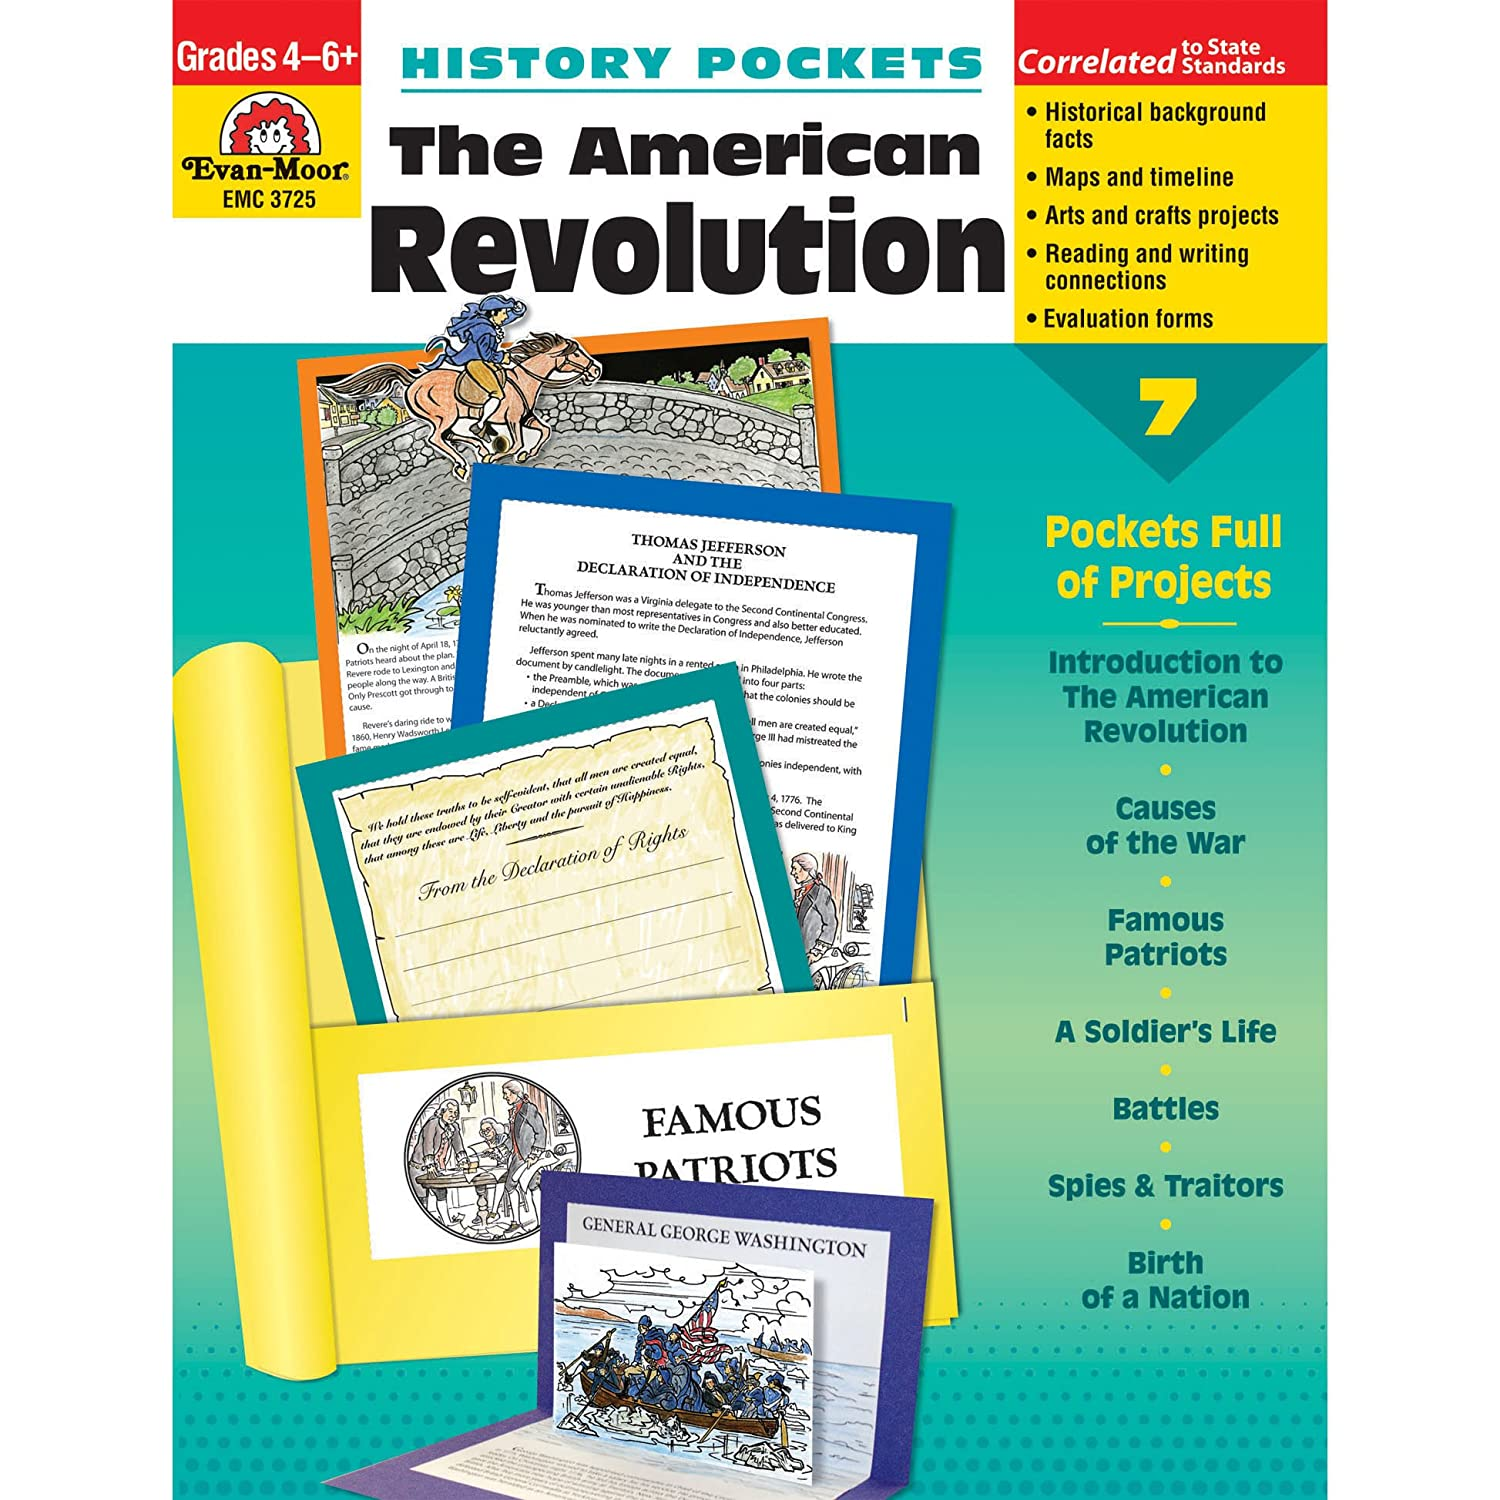 Amazon history pockets the american revolution 0023472037251 amazon history pockets the american revolution 0023472037251 evan moor evan moor educational publishers books fandeluxe Gallery